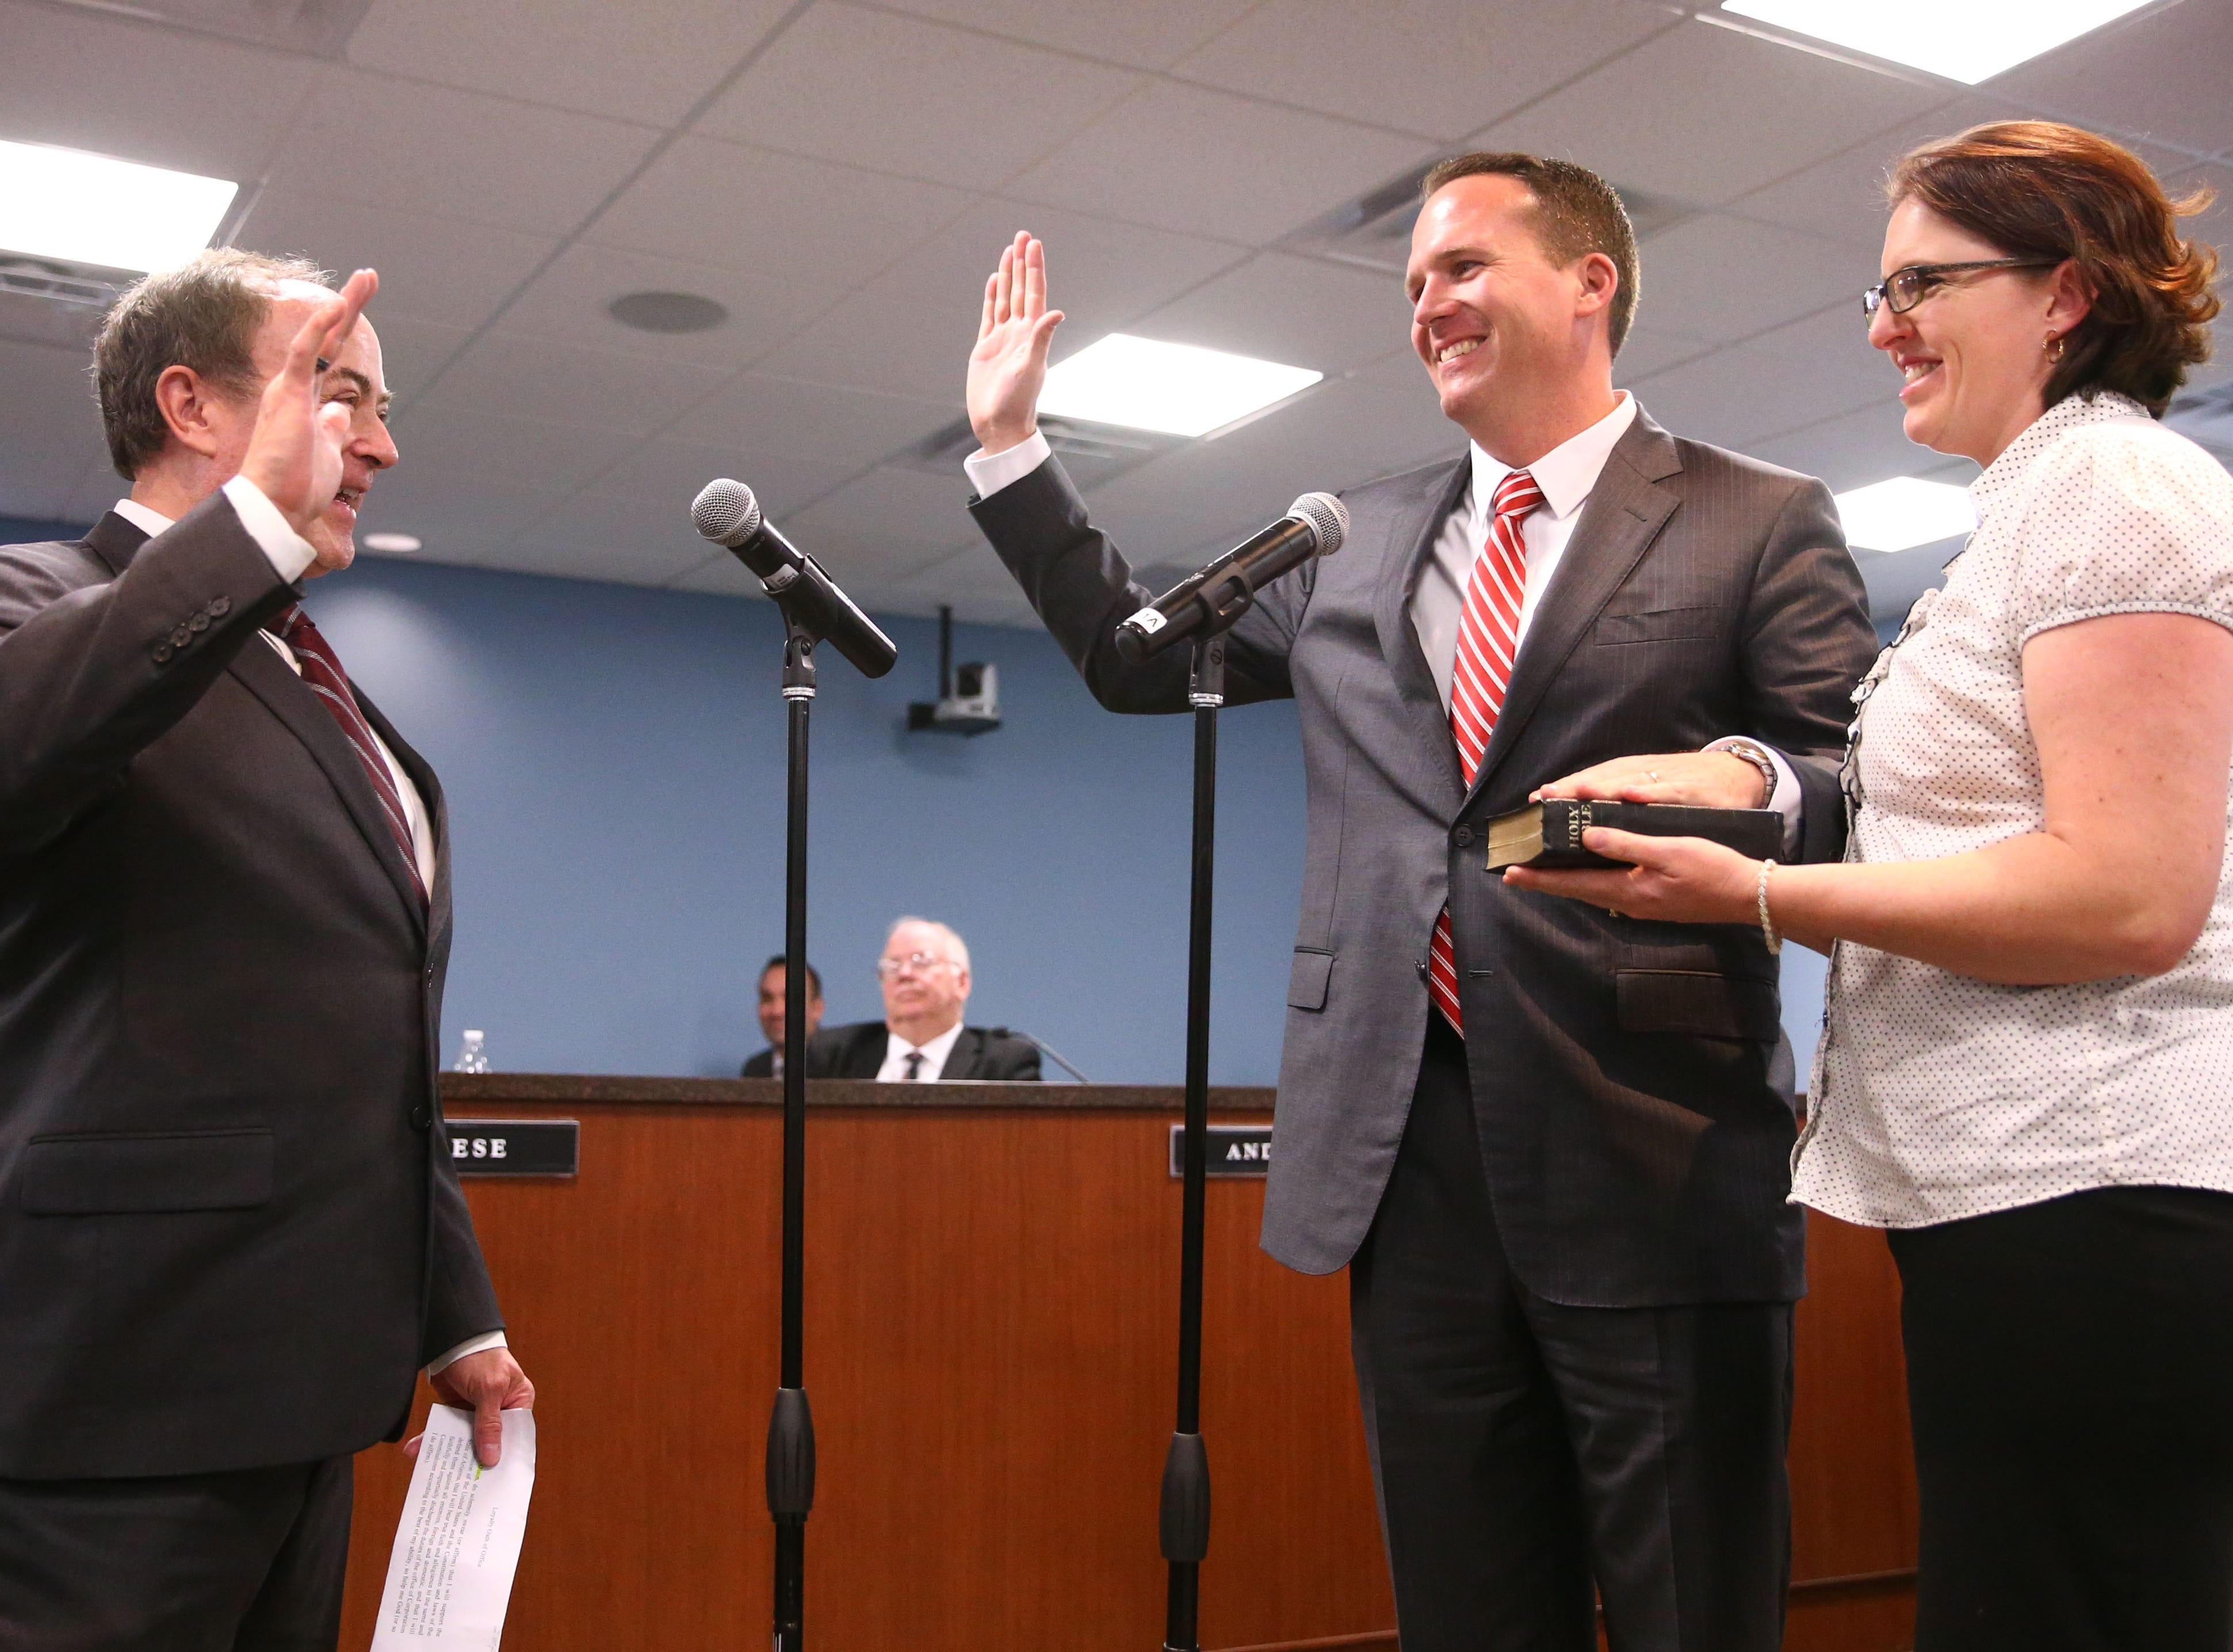 Justin Olson during the swearing-in ceremony on Jan. 7 at Arizona Corporation Commission offices in Phoenix.